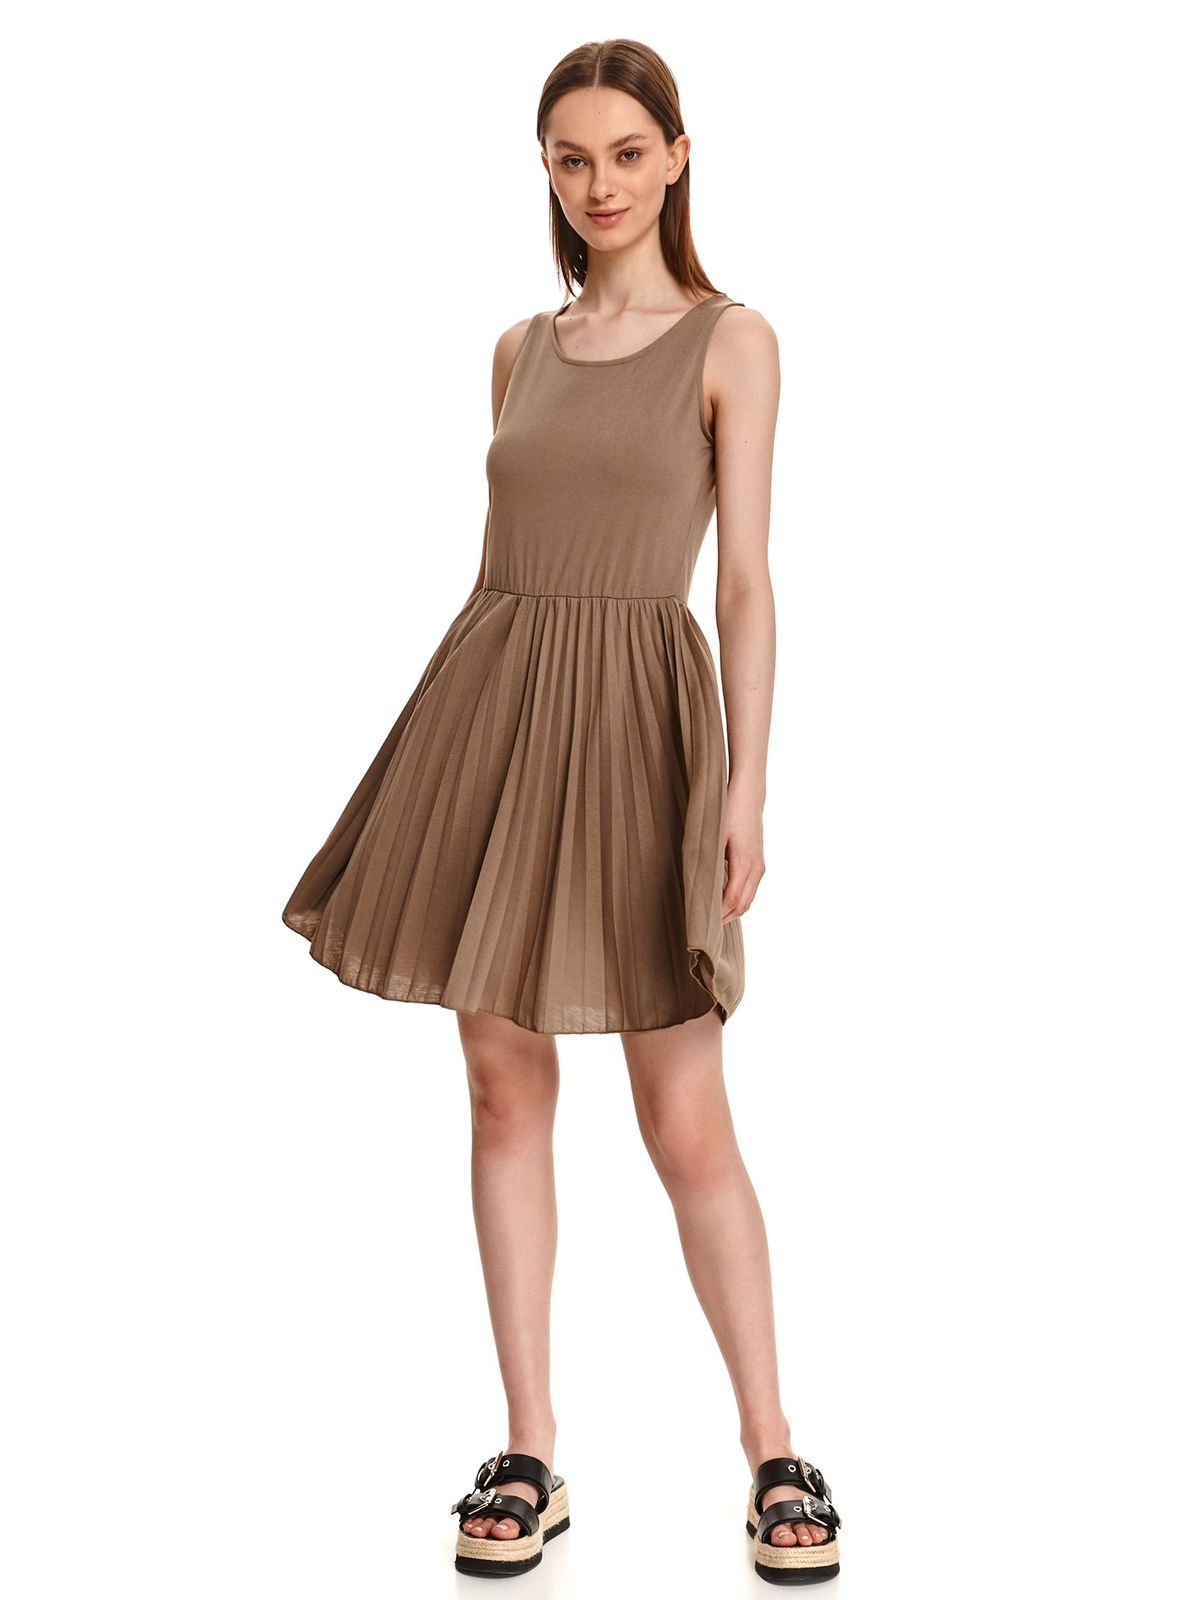 Brown dress short cut cloche folded up with rounded cleavage